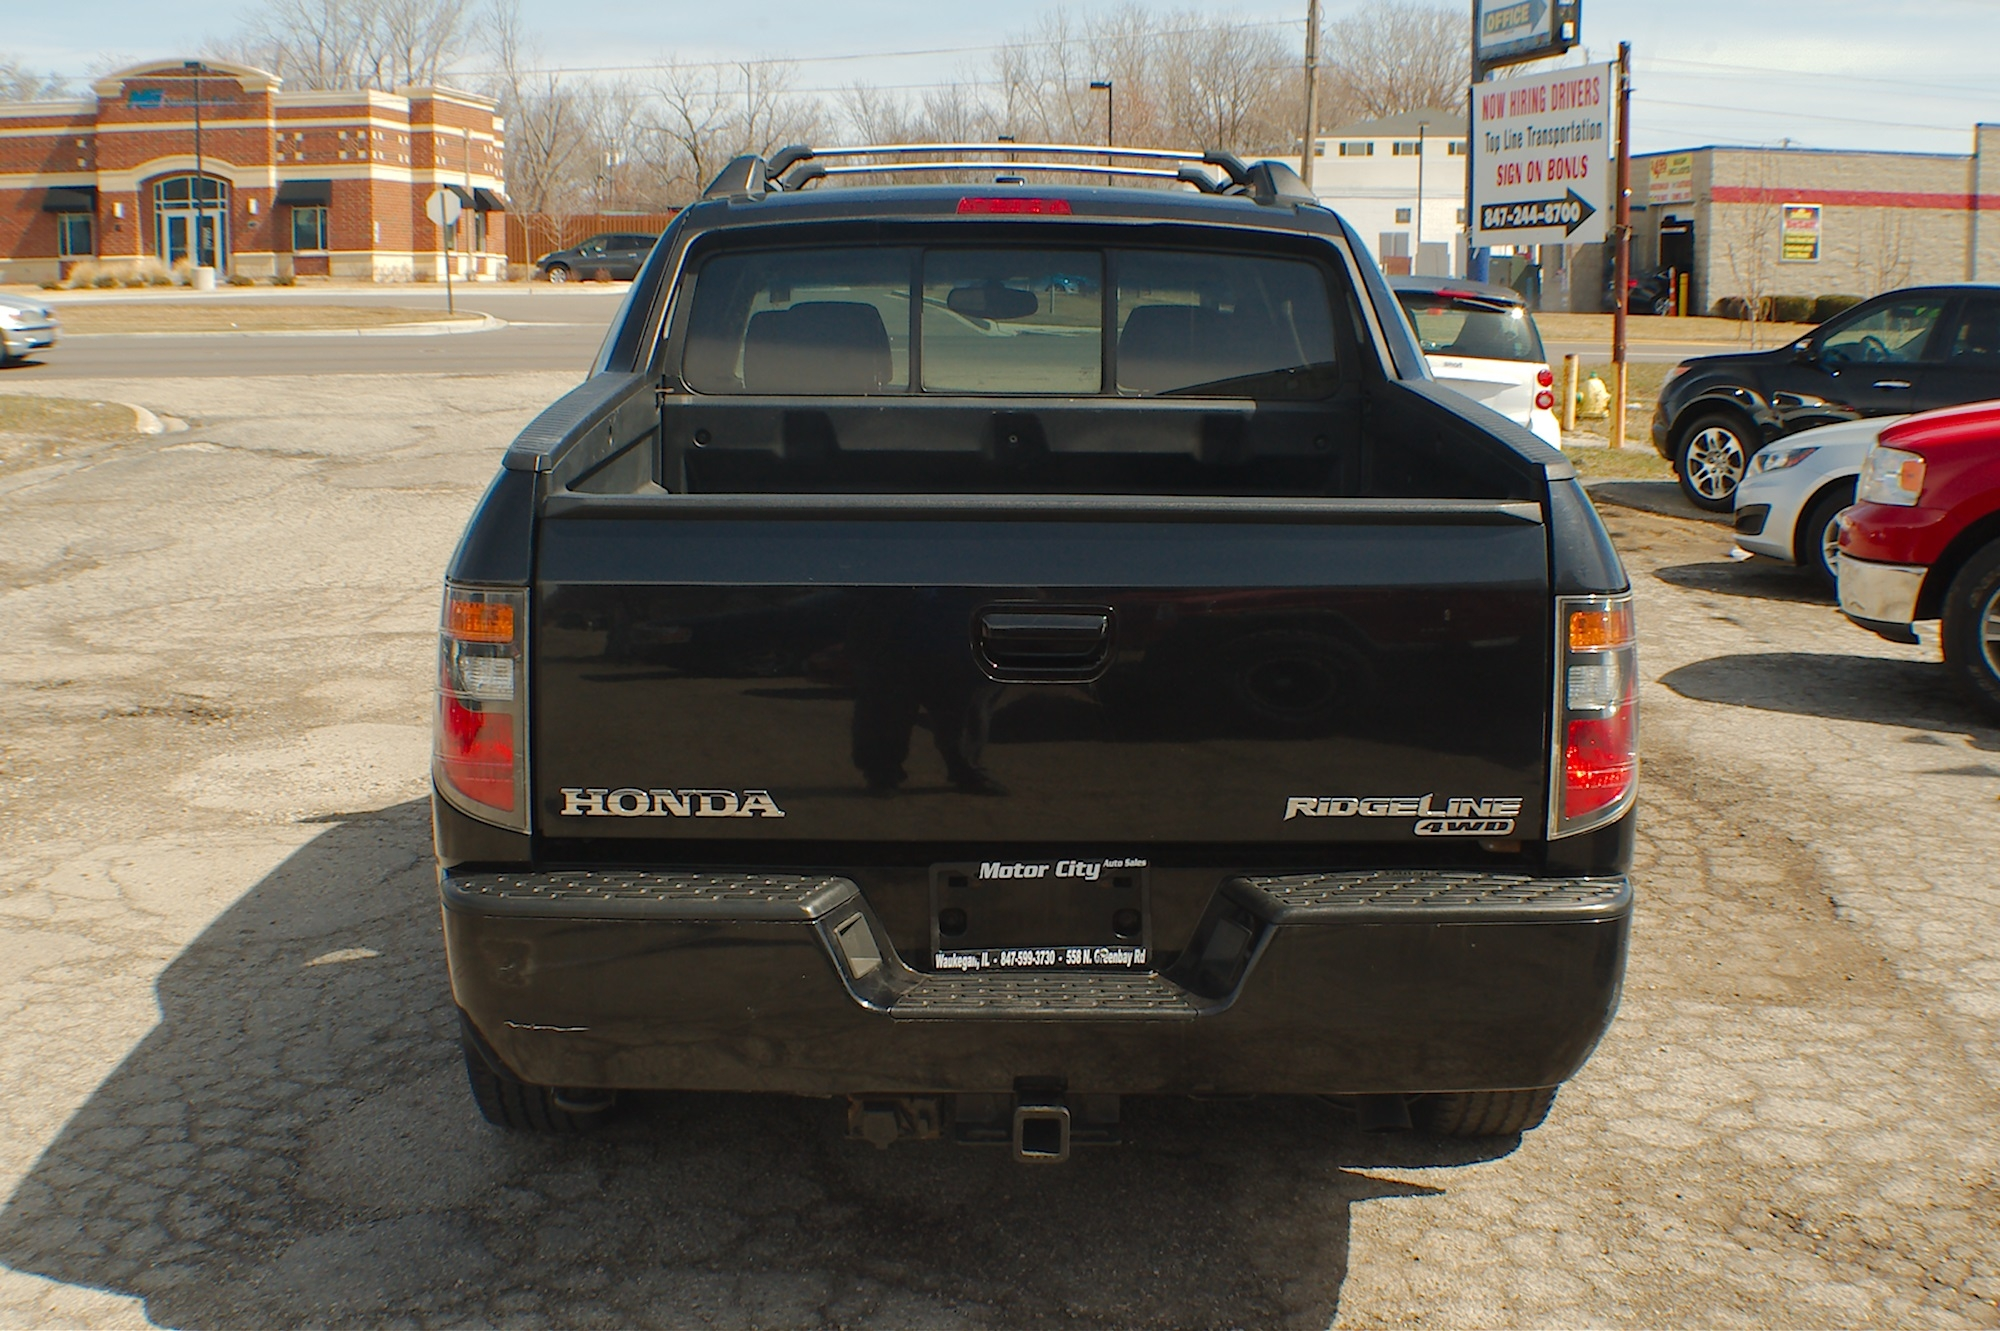 2006 Honda Ridgeline Black 4WD Crew Cab Truck Sale Buffalo Grove Deerfield Fox Lake Antioch